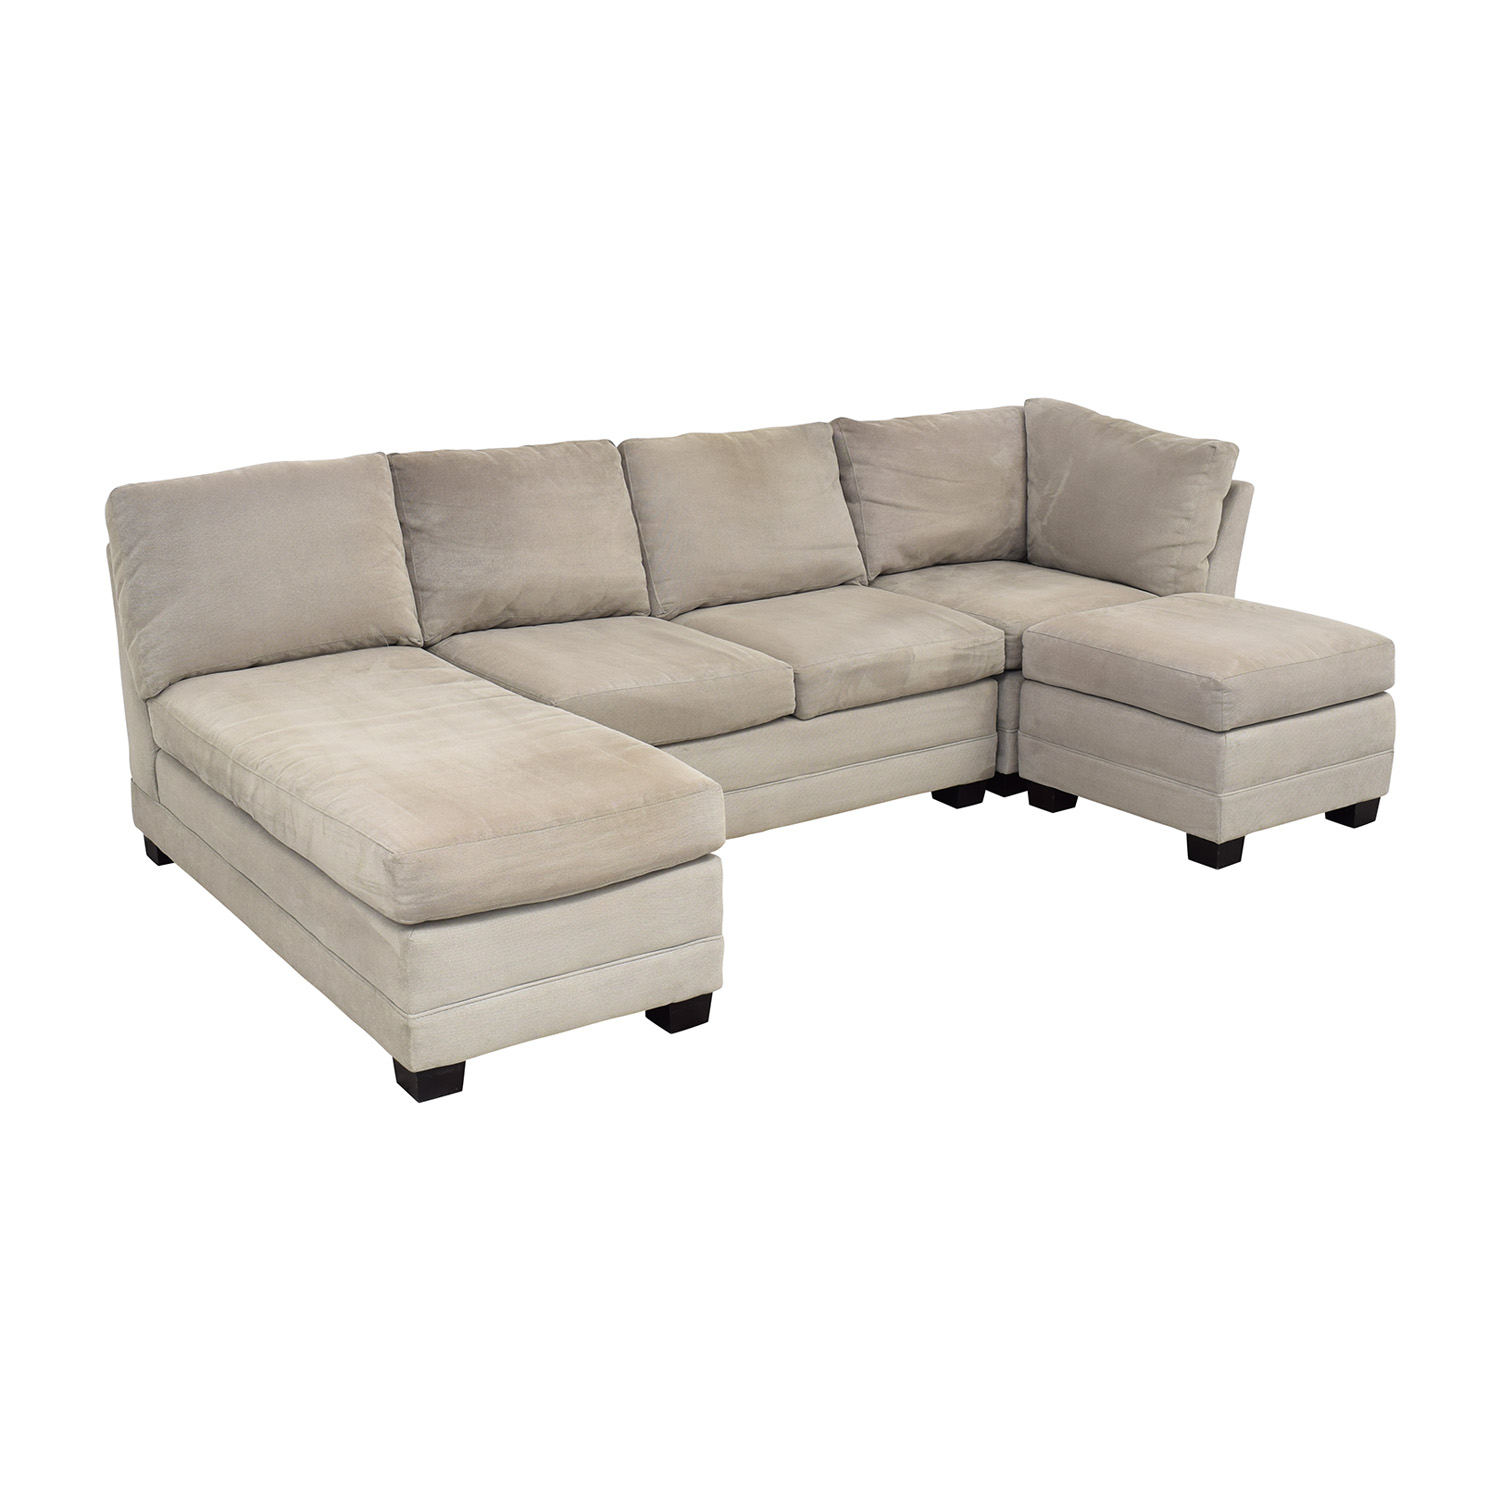 Crate & Barrel Crate & Barrel Sectional Sofa with Chaise dimensions